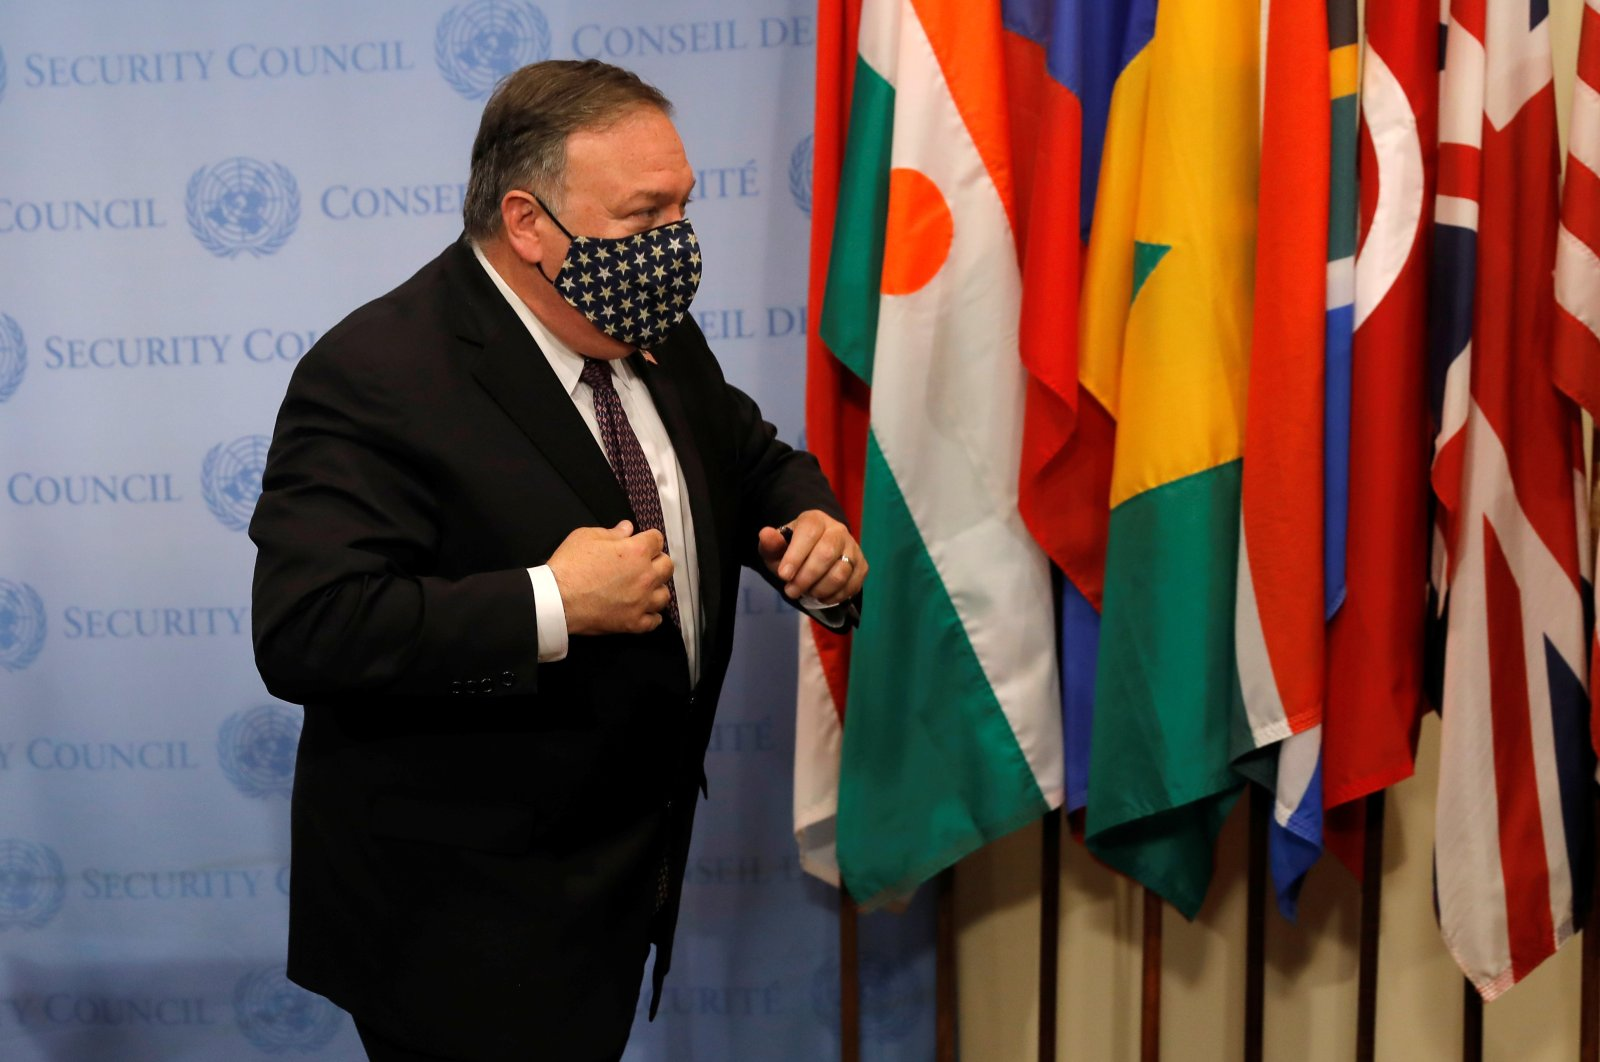 U.S. Secretary of State Mike Pompeo departs after speaking to reporters following a meeting with members of the U.N. Security Council at U.N. headquarters, New York, U.S., Aug. 20, 2020. (REUTERS Photo)